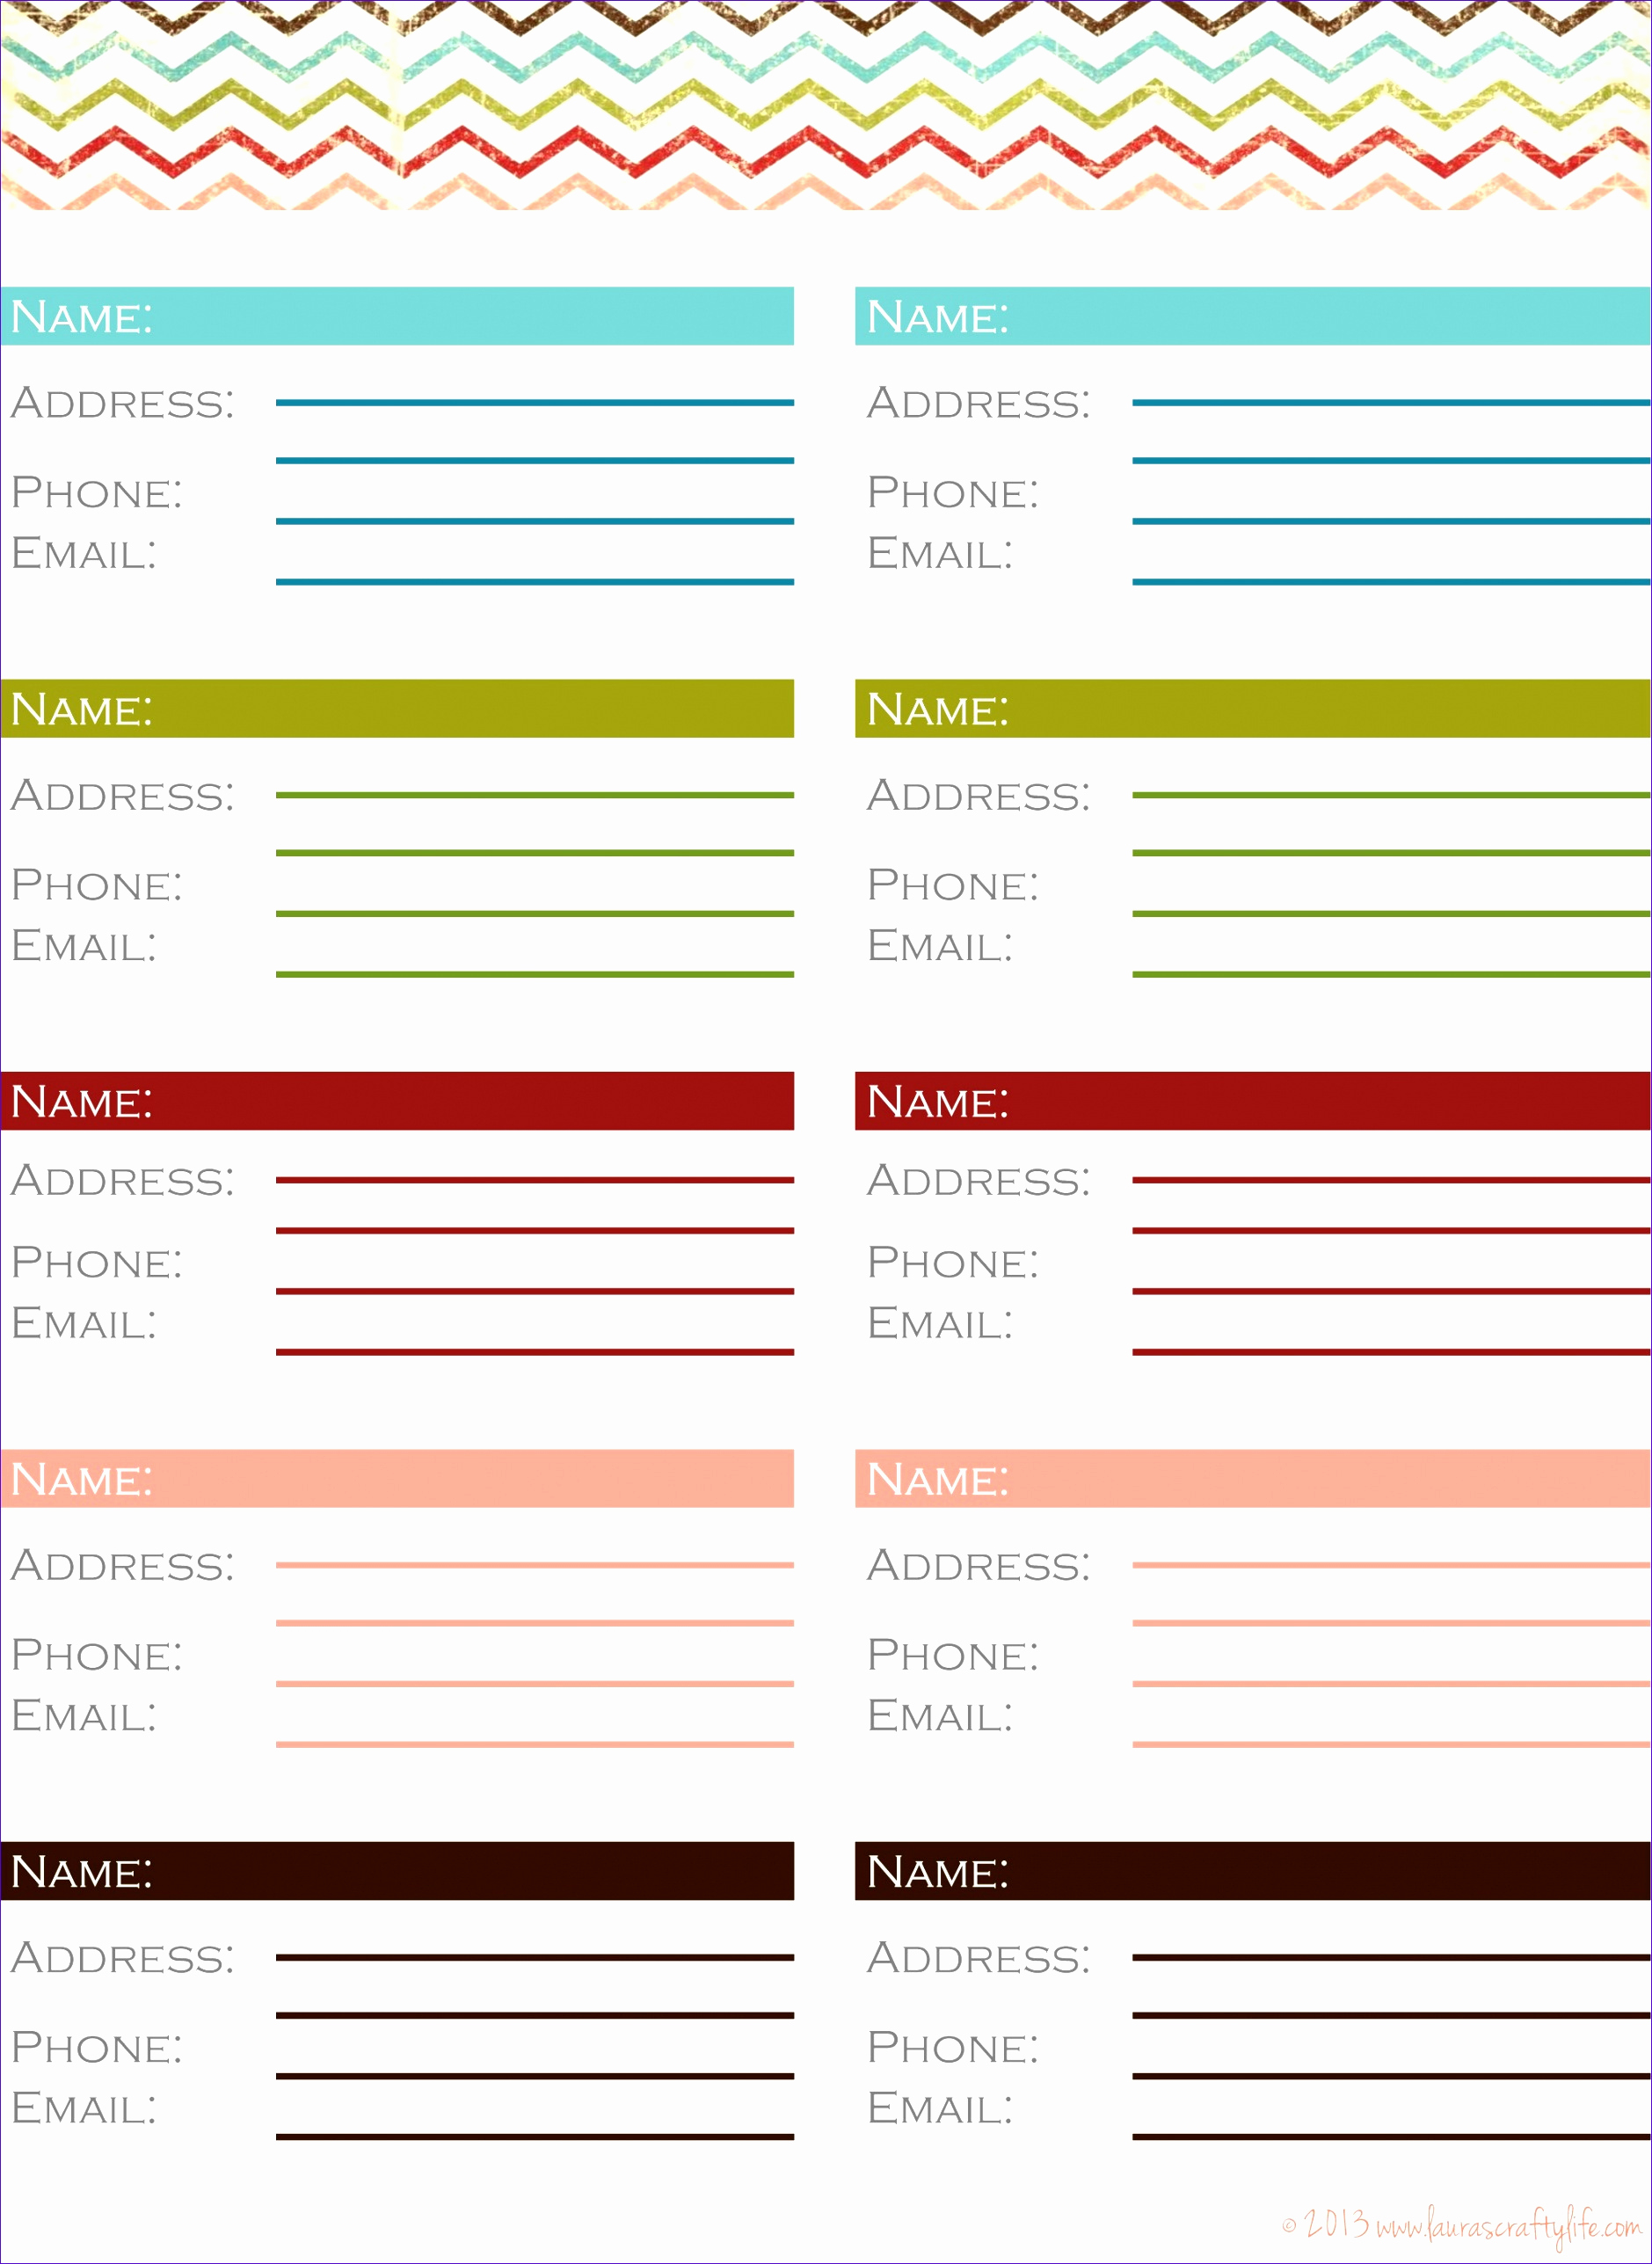 Address Book Template Excel Unique 10 Phone Book Excel Template Exceltemplates Exceltemplates